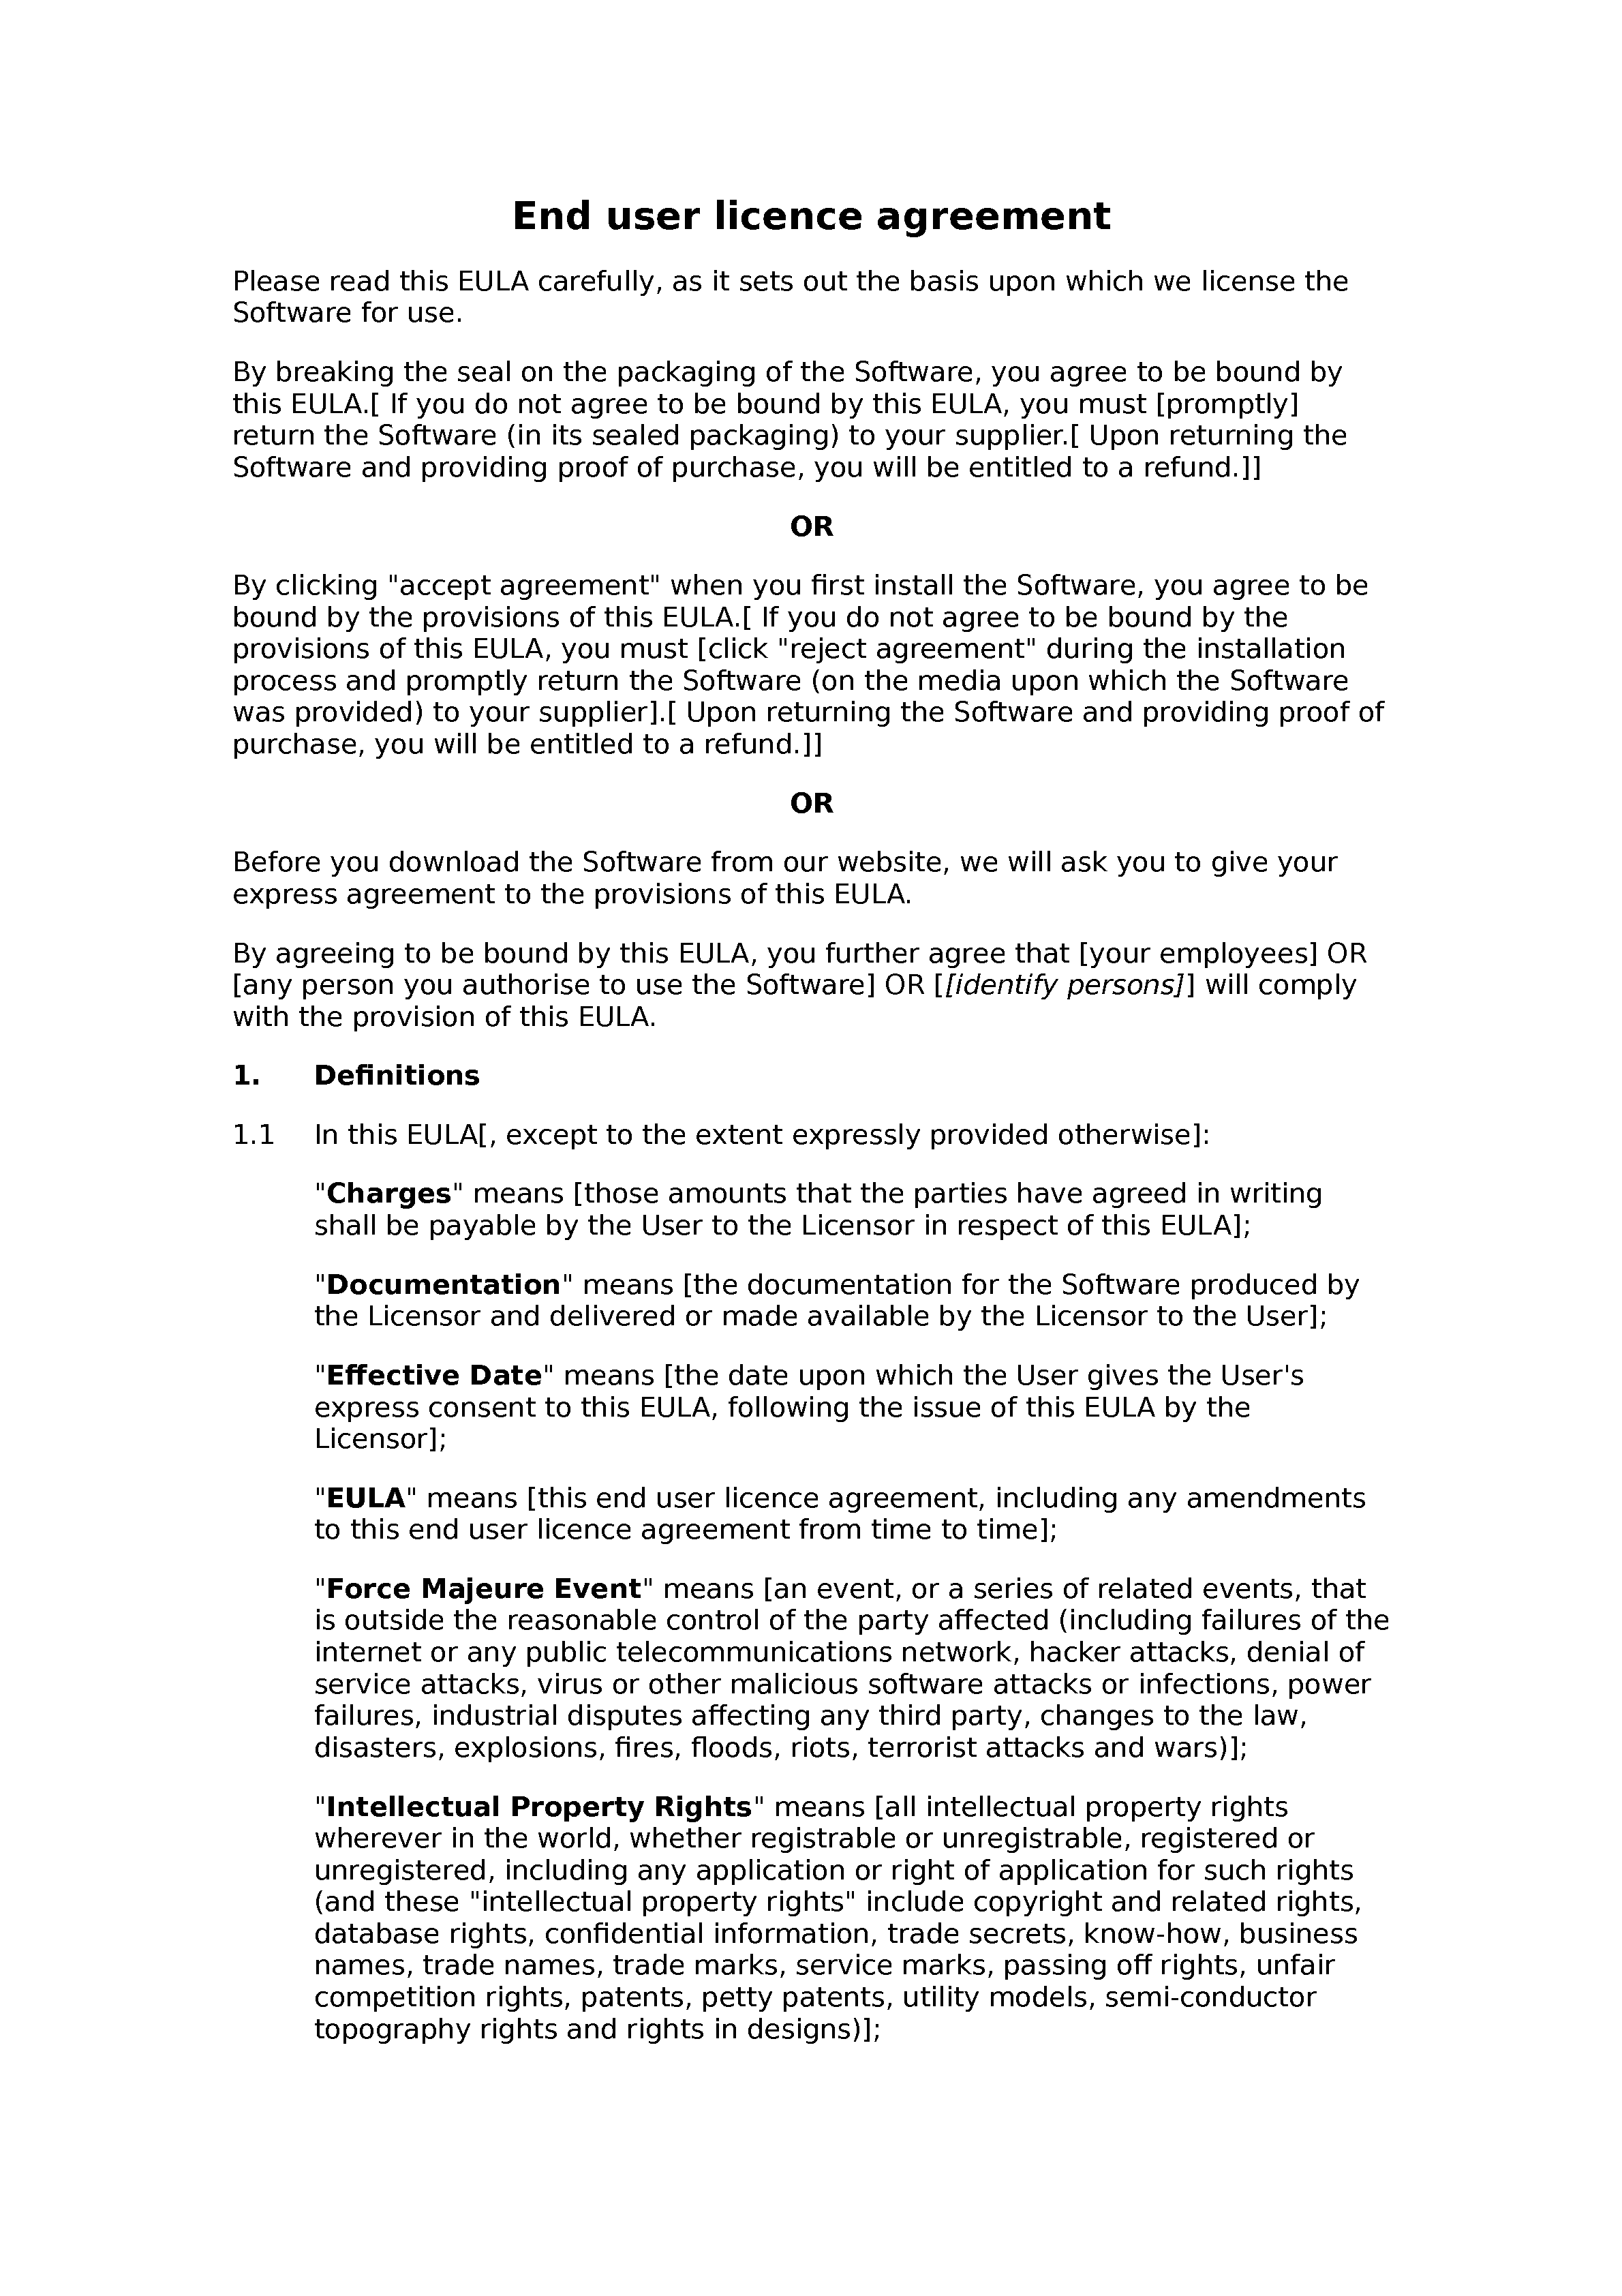 End user licence agreement document preview